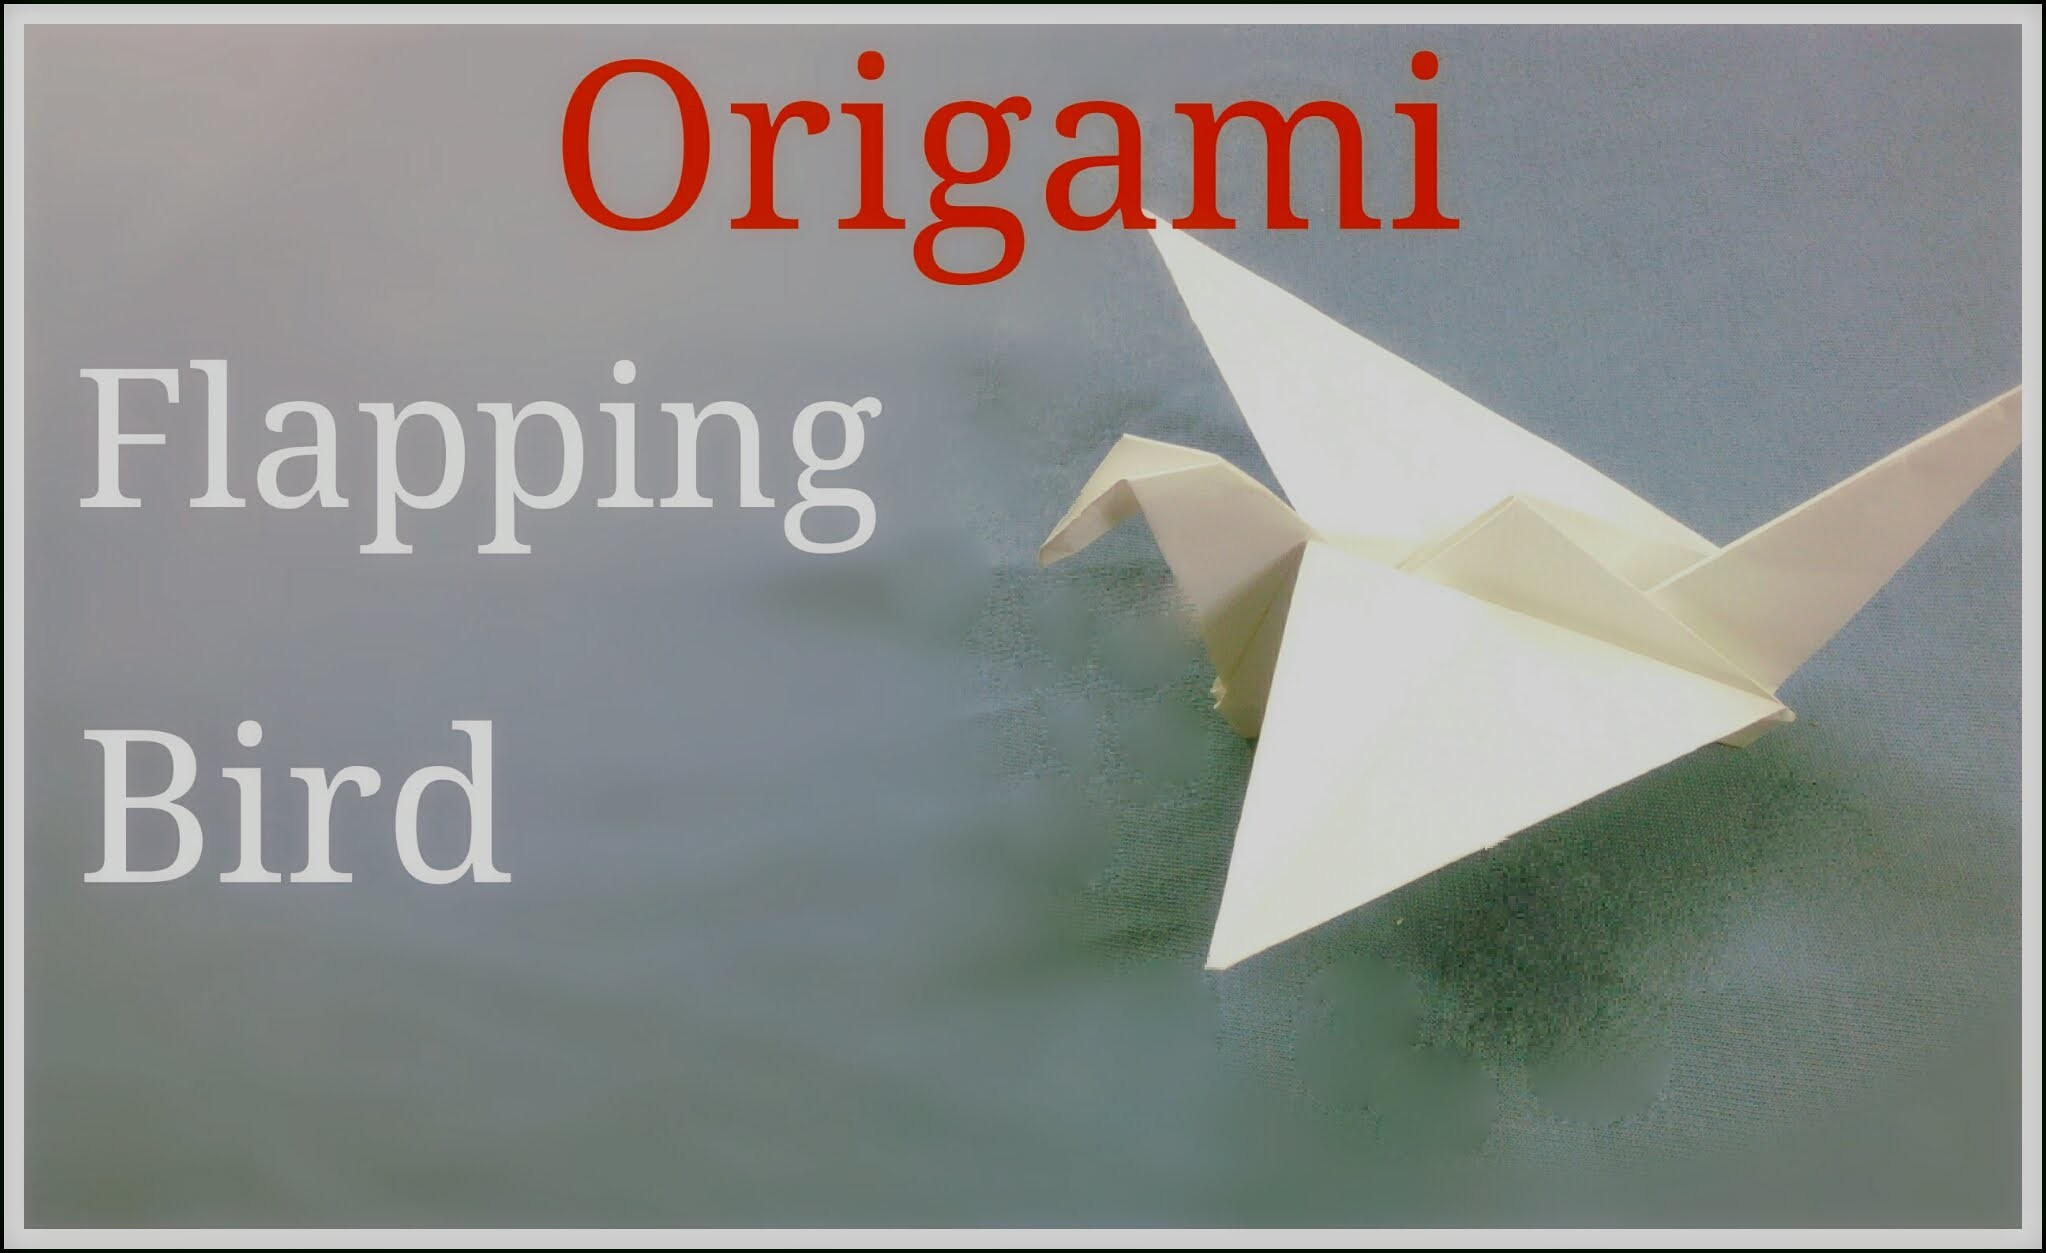 Craft of paper flapping bird origami